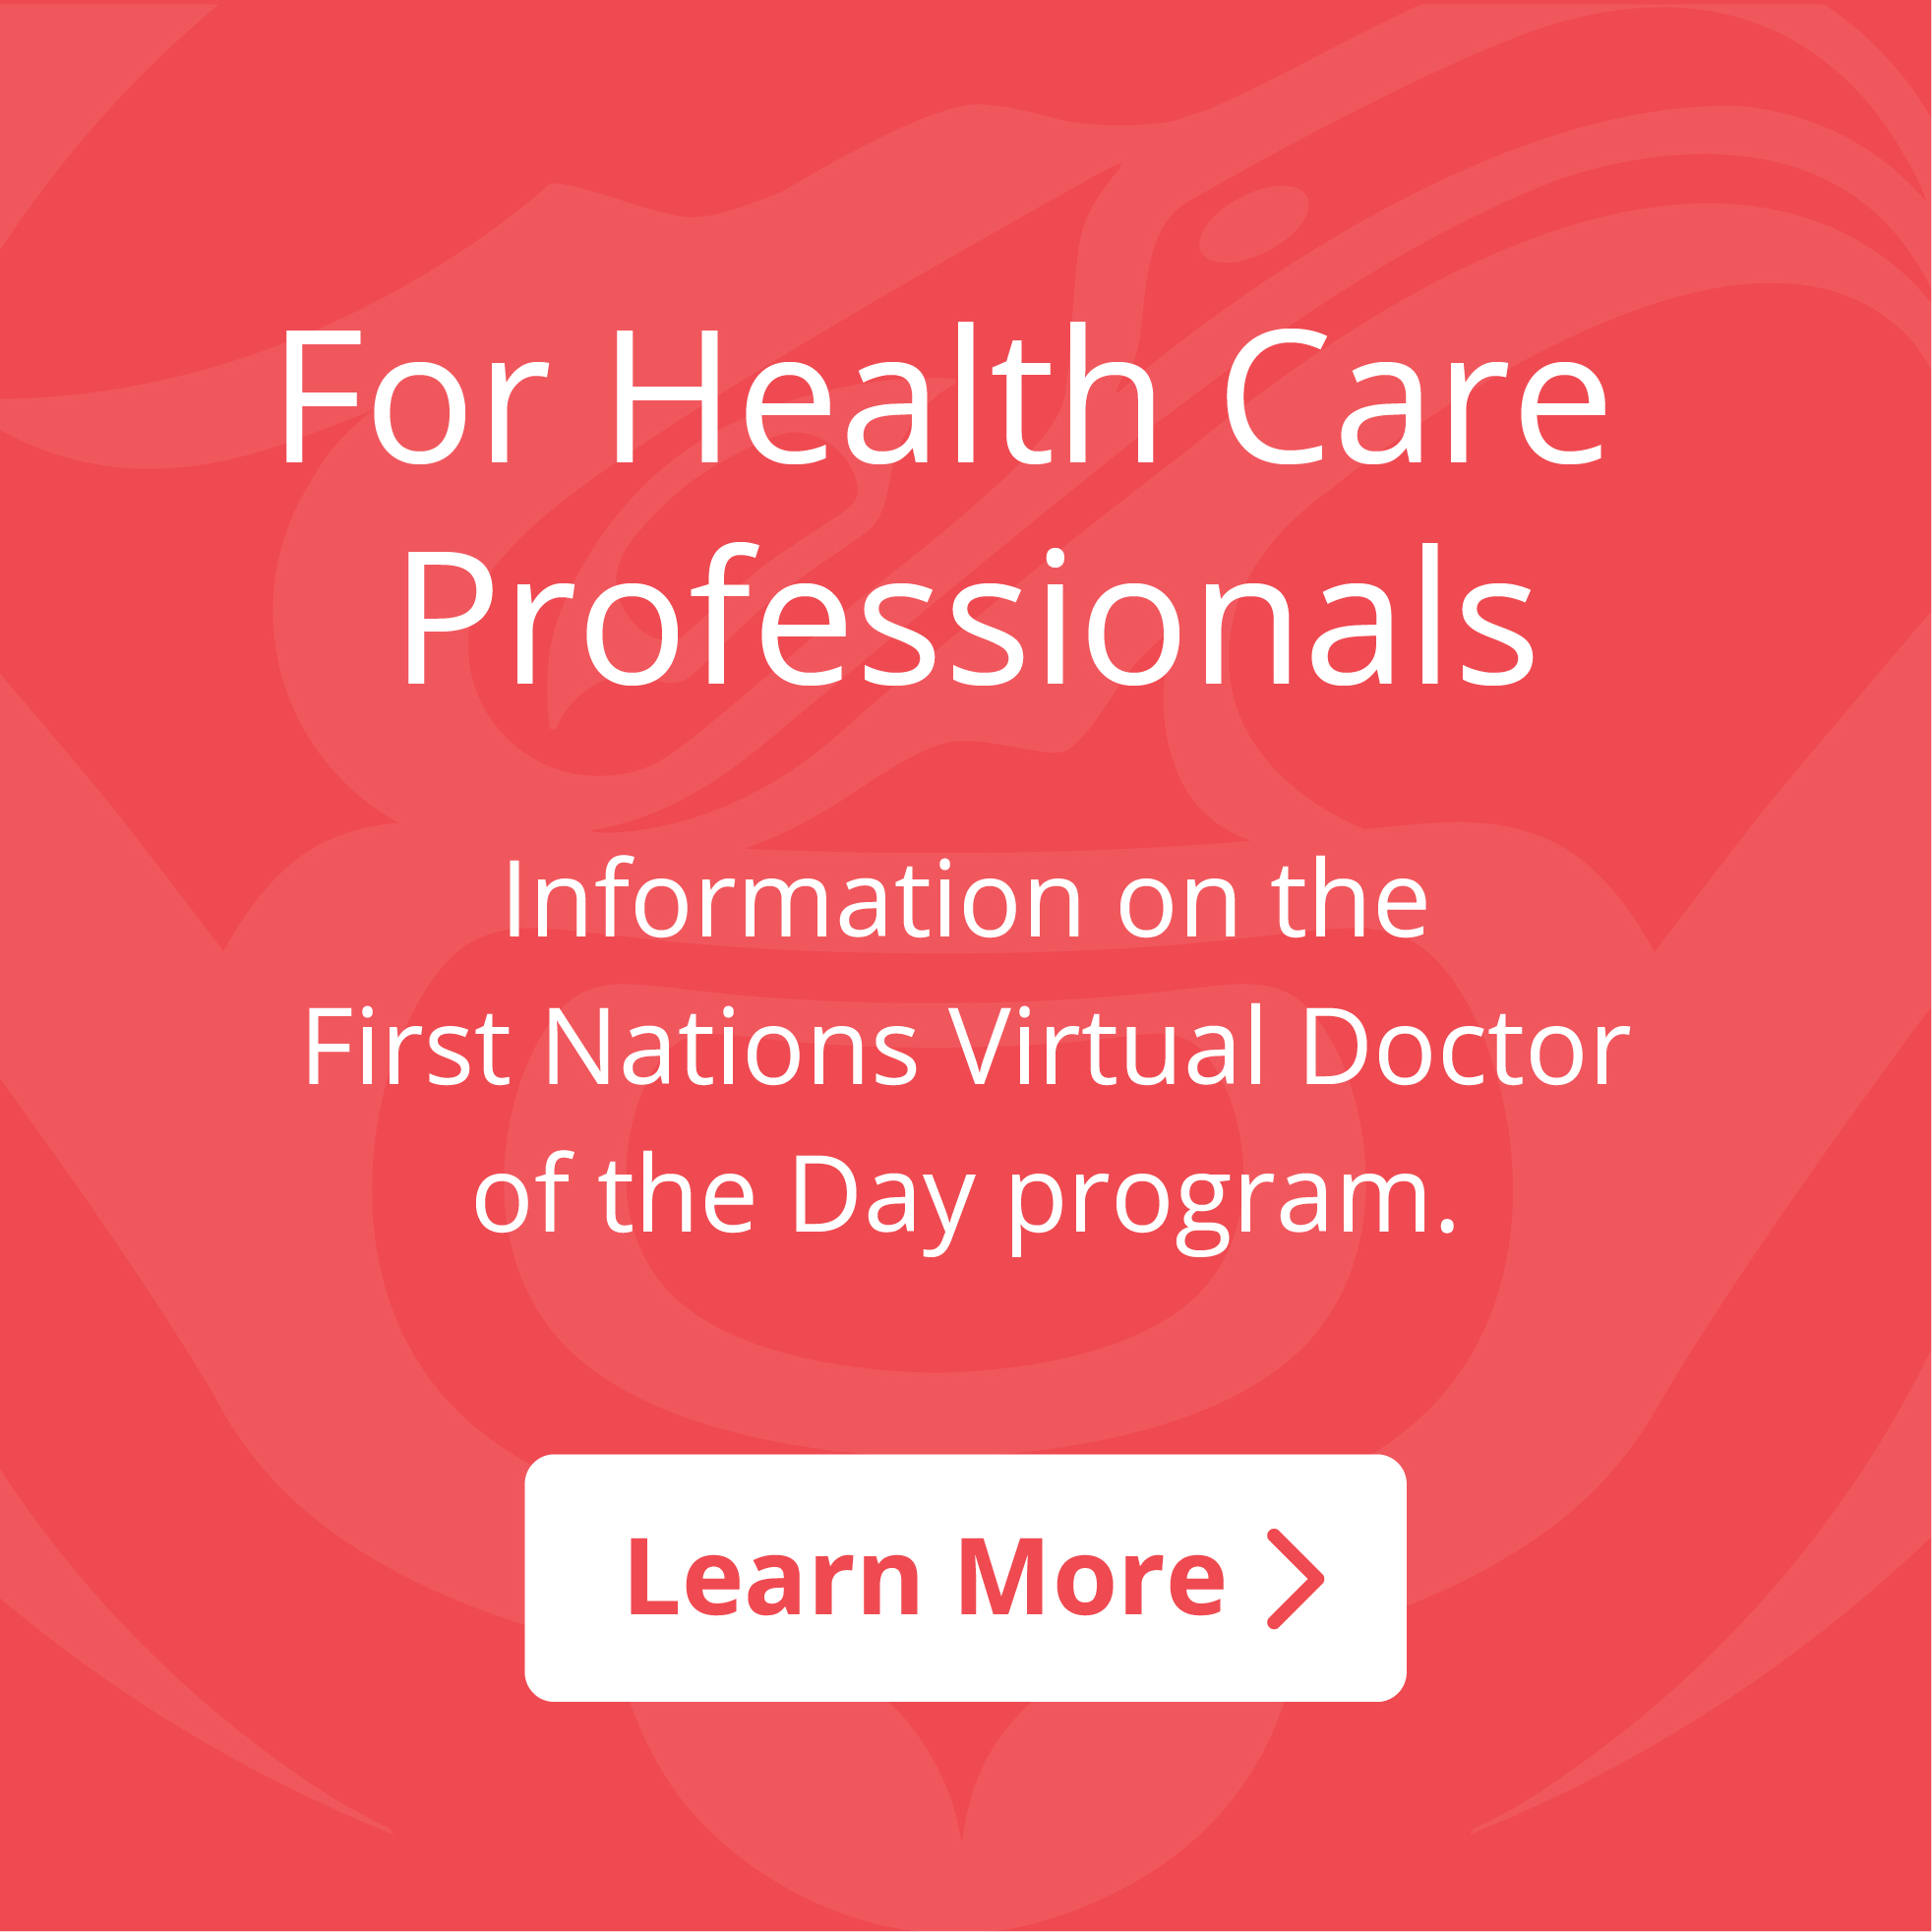 FNHA-FNVDoD-For-Health-Care-Professionals.jpg